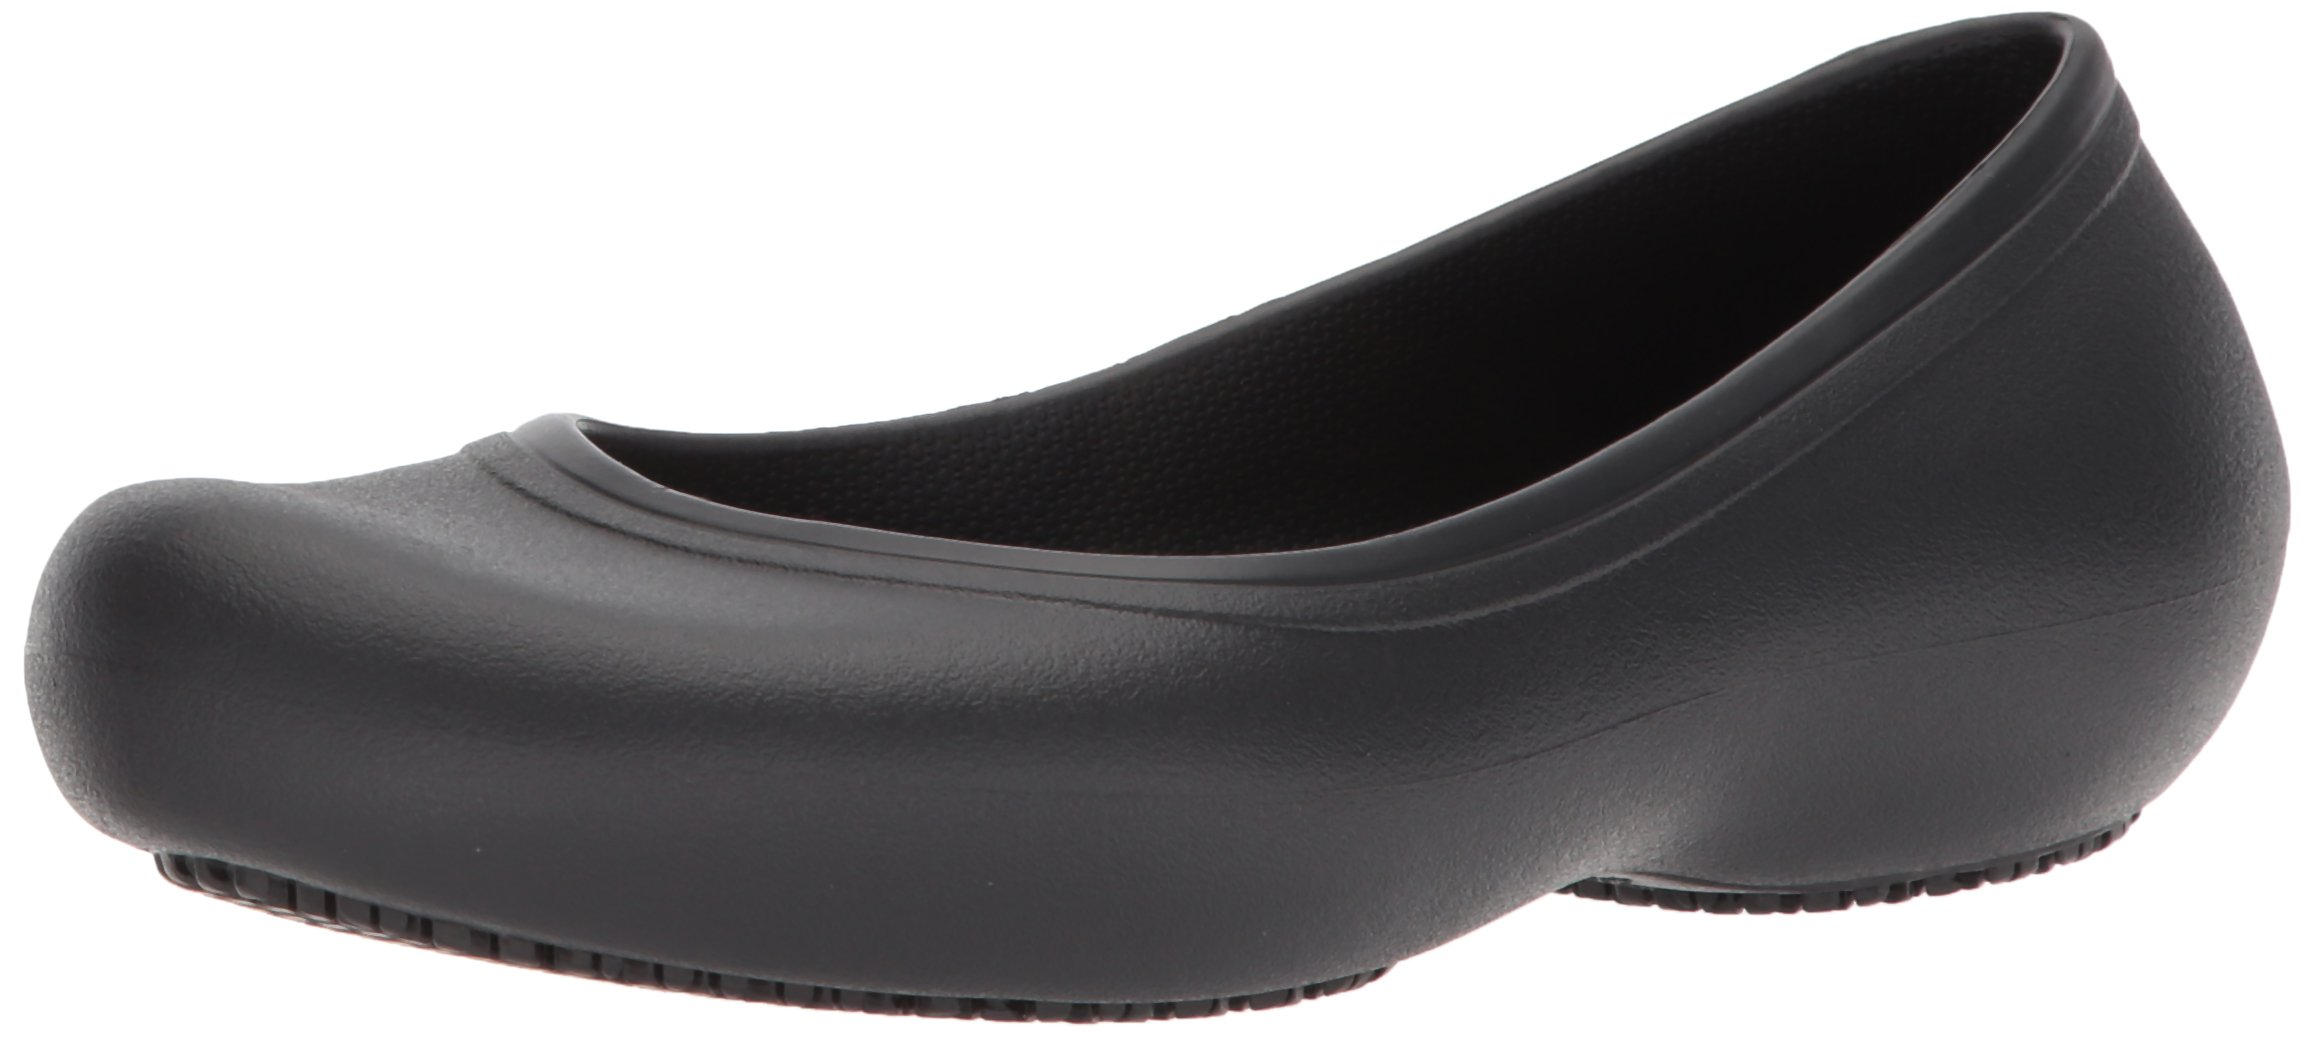 Crocs Women's Work Flat Food Service Shoe, Black, 8 M US